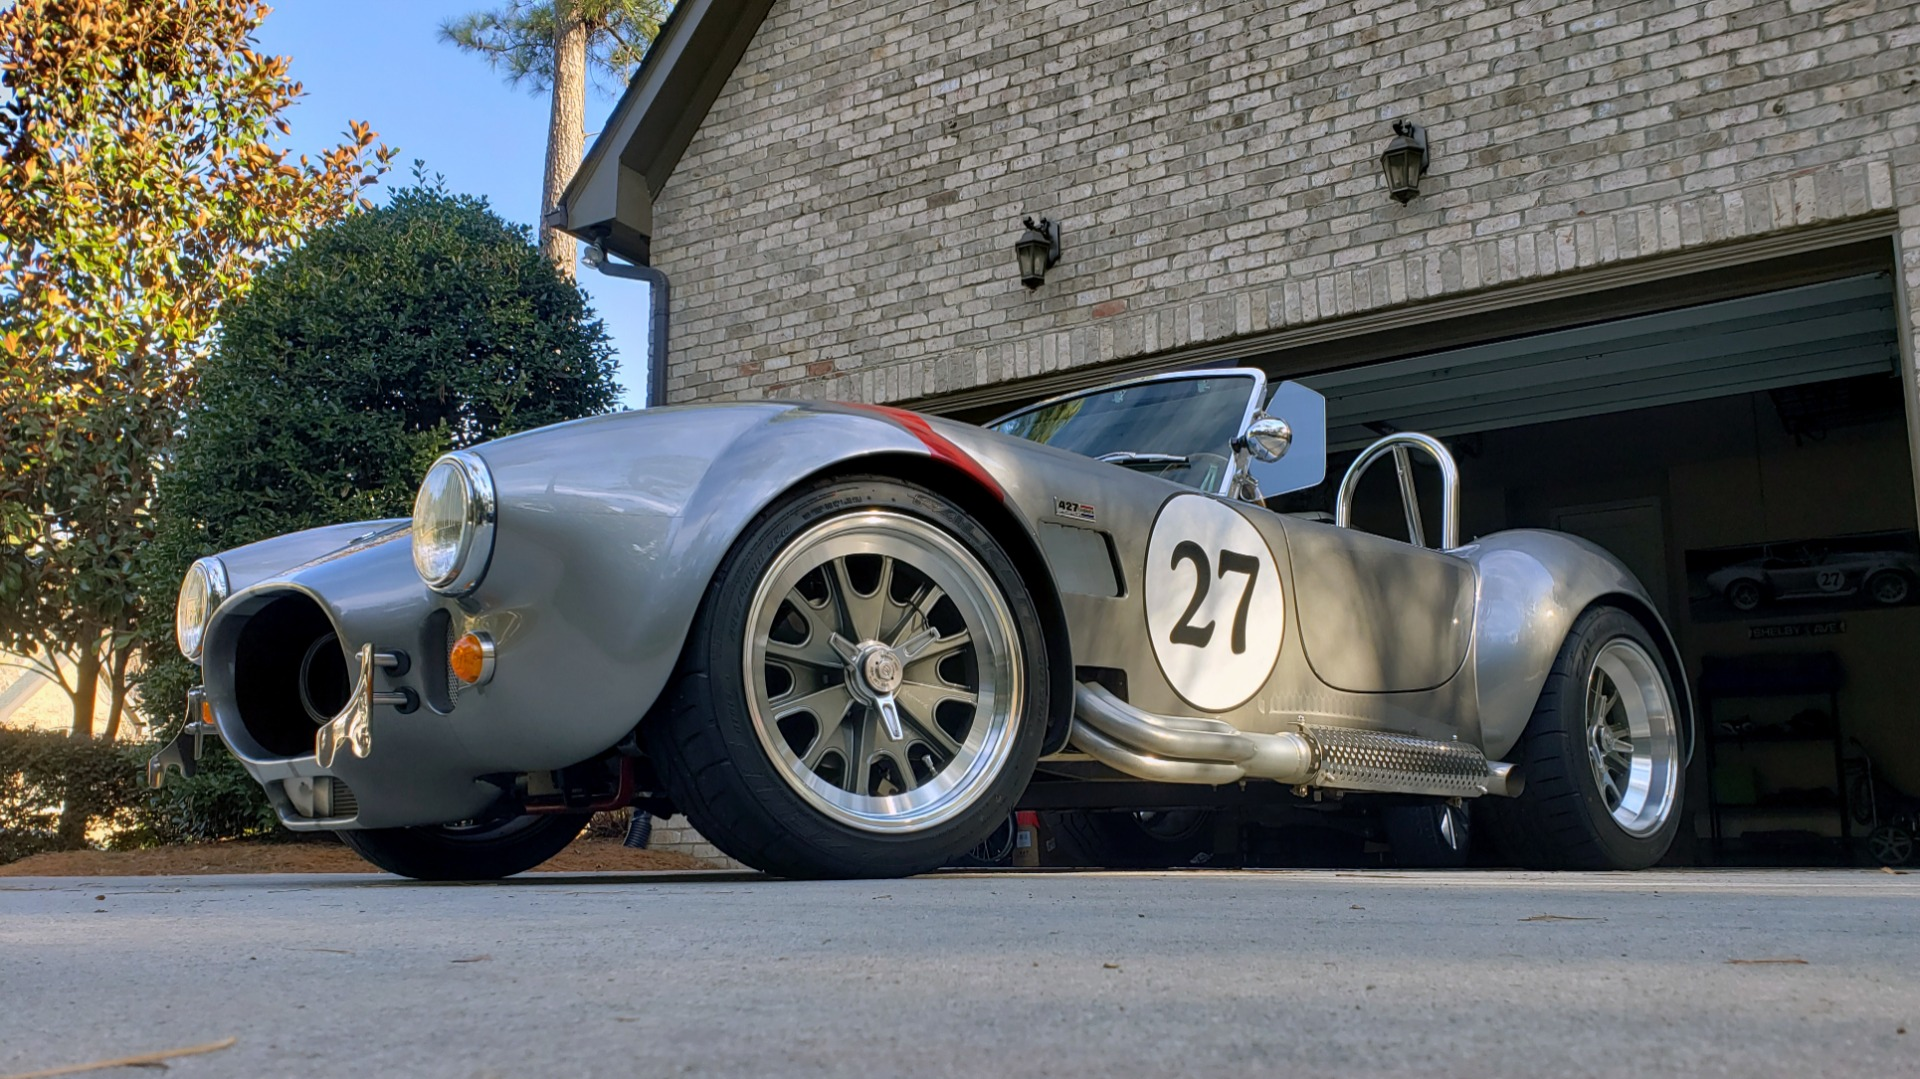 Used 1965 Ford COBRA 427 ROADSTER BY BRACKDRAFT RACING ROUSH 553HP V8 / TREMEC 6-SPD / PWR STRNG for sale $74,999 at Formula Imports in Charlotte NC 28227 10